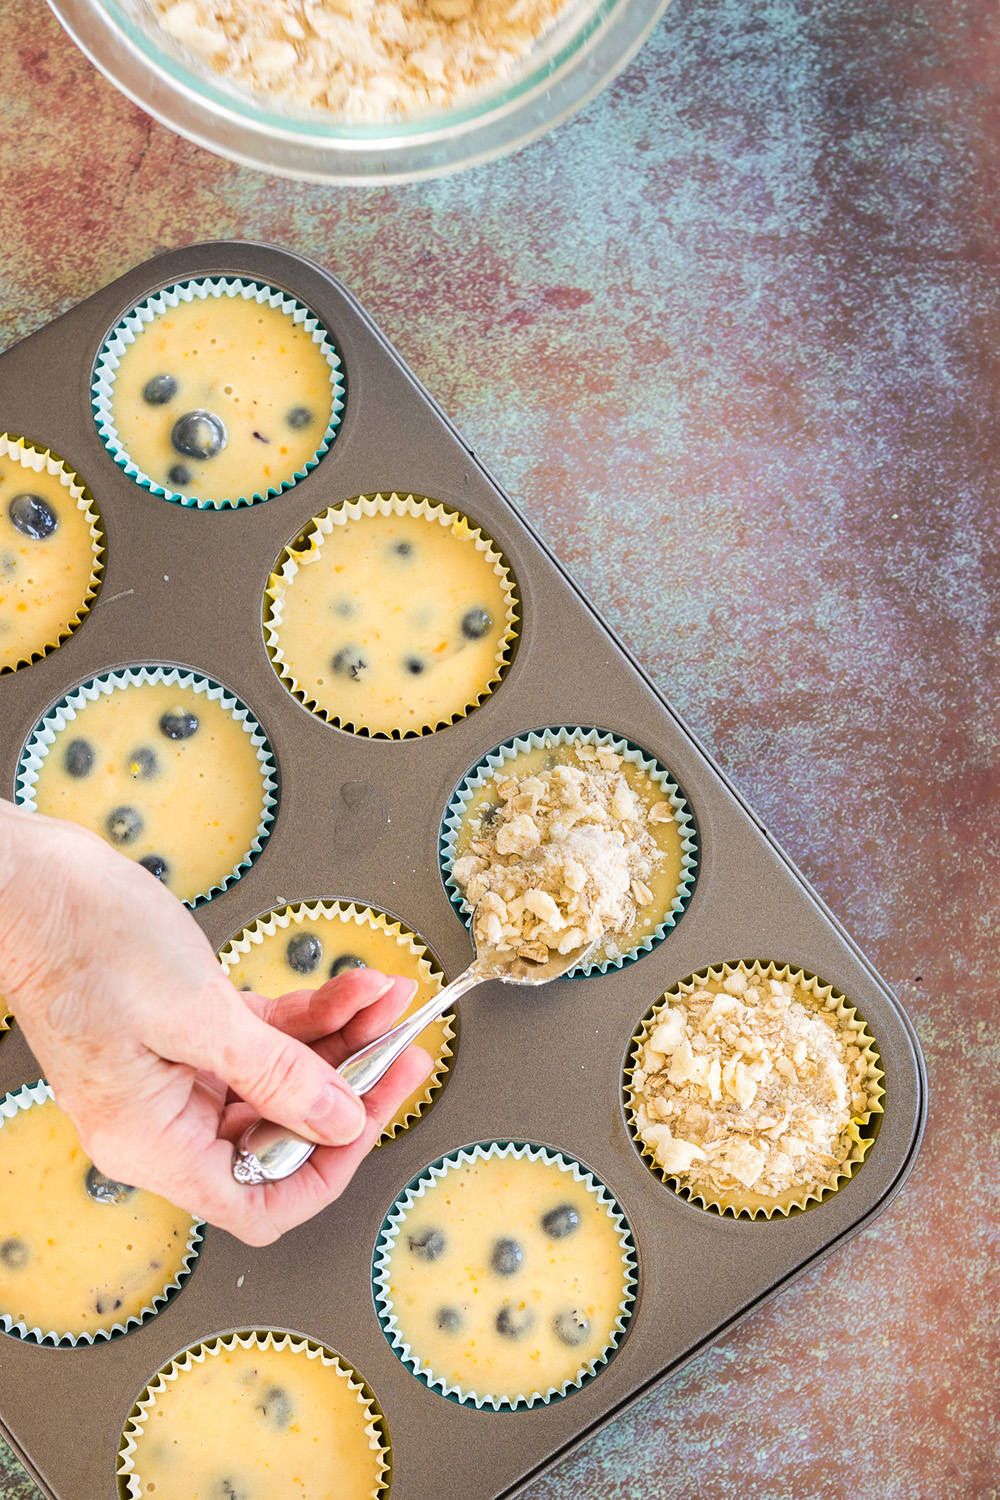 Adding topping to blueberry muffins in a tin.